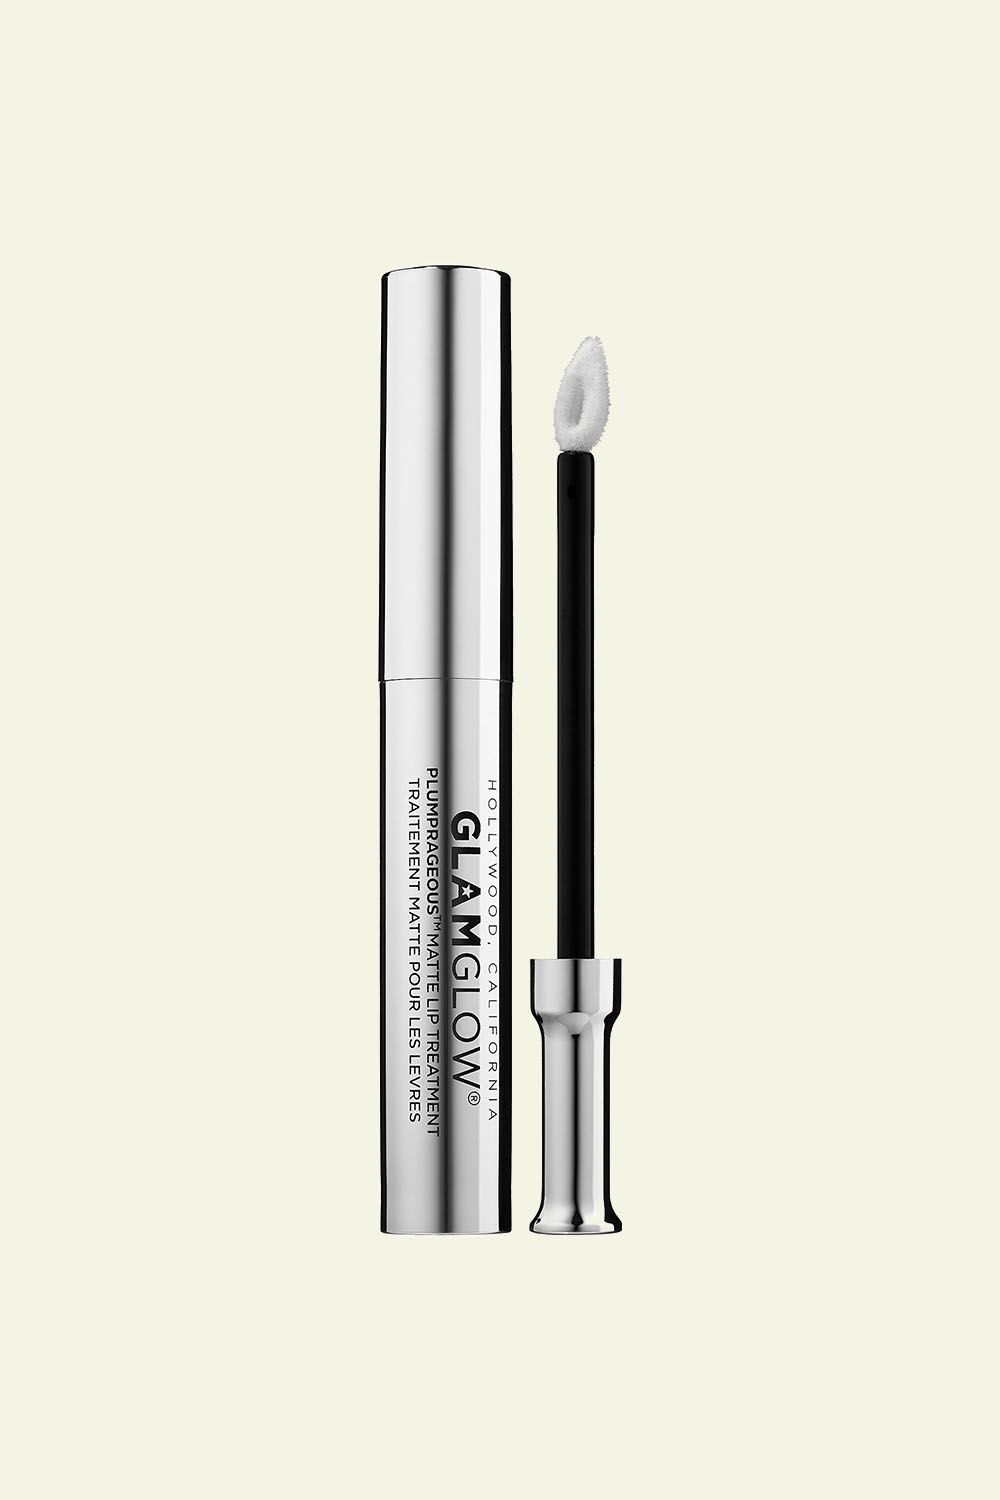 """<p>If you prefer a non-shiny finish, this matte lip primer has a triple plumping complex with potent botanical actives to create an amped-up lipcanvas.</p><p>GlamGlow Plumprageous Matte Lip Treatment,$24; <a href=""""http://bit.ly/2kXwA7J"""" target=""""_blank"""" data-tracking-id=""""recirc-text-link"""">sephora.com</a>.</p>"""